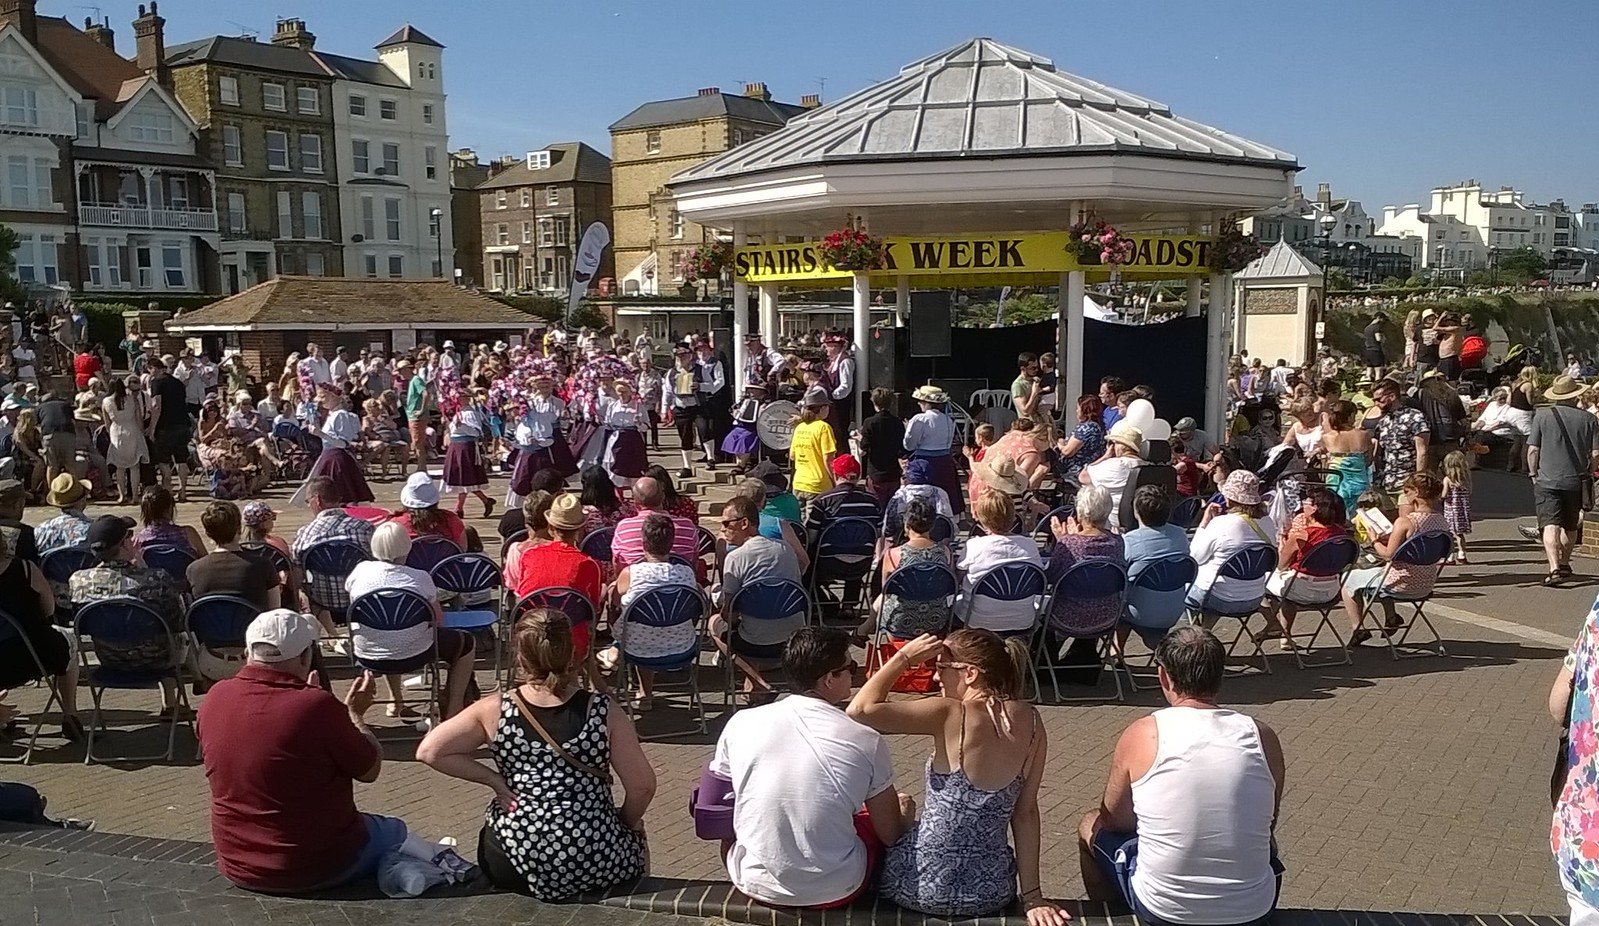 Bandstand life, Broadstairs Folk Festival All girl Morris dancers